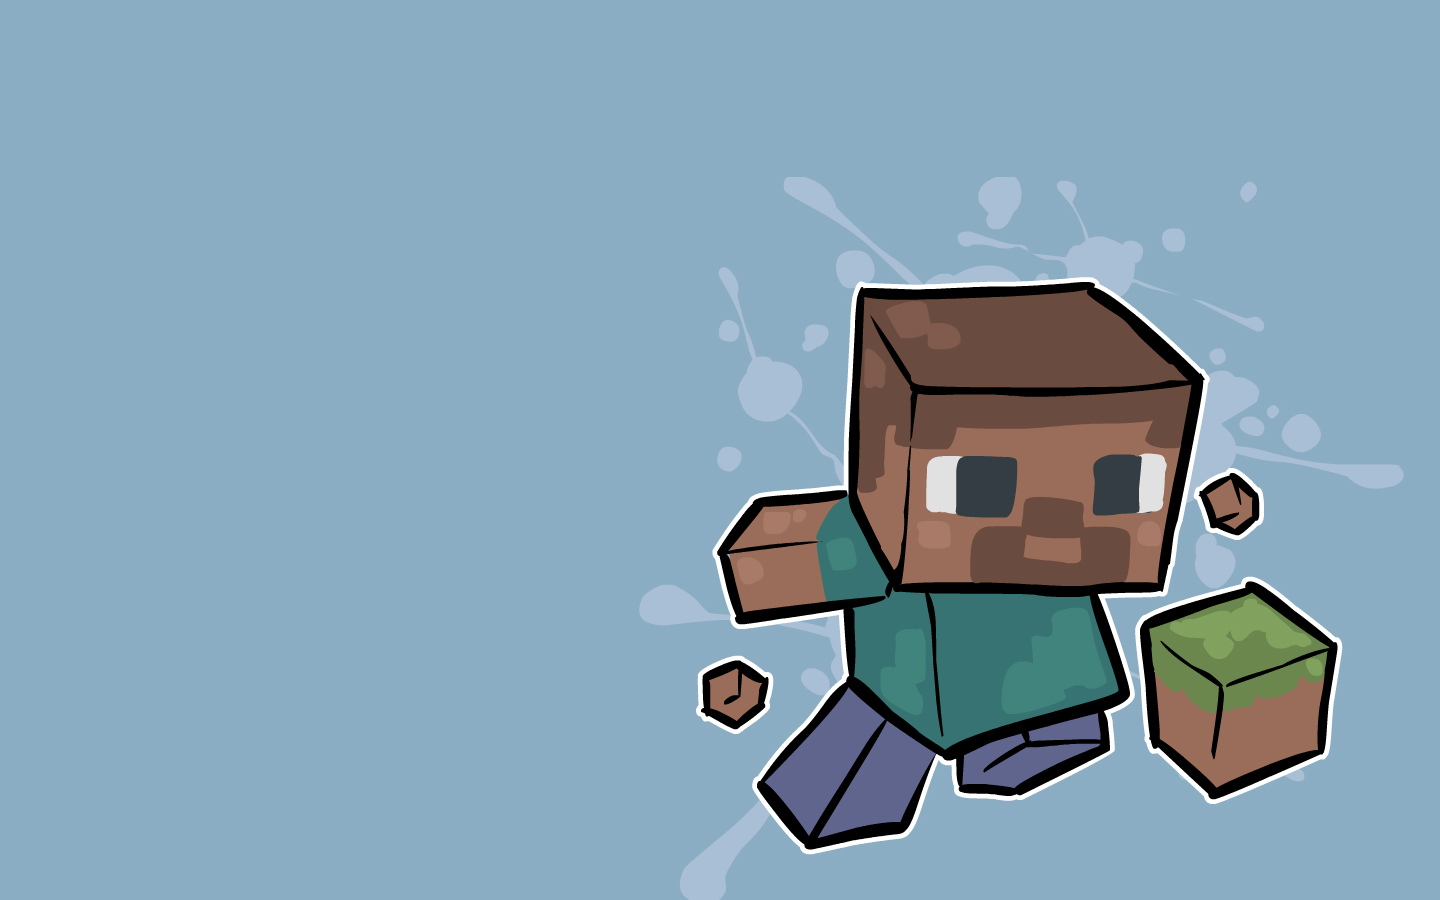 Minecraft Skin Wallpaper Maker